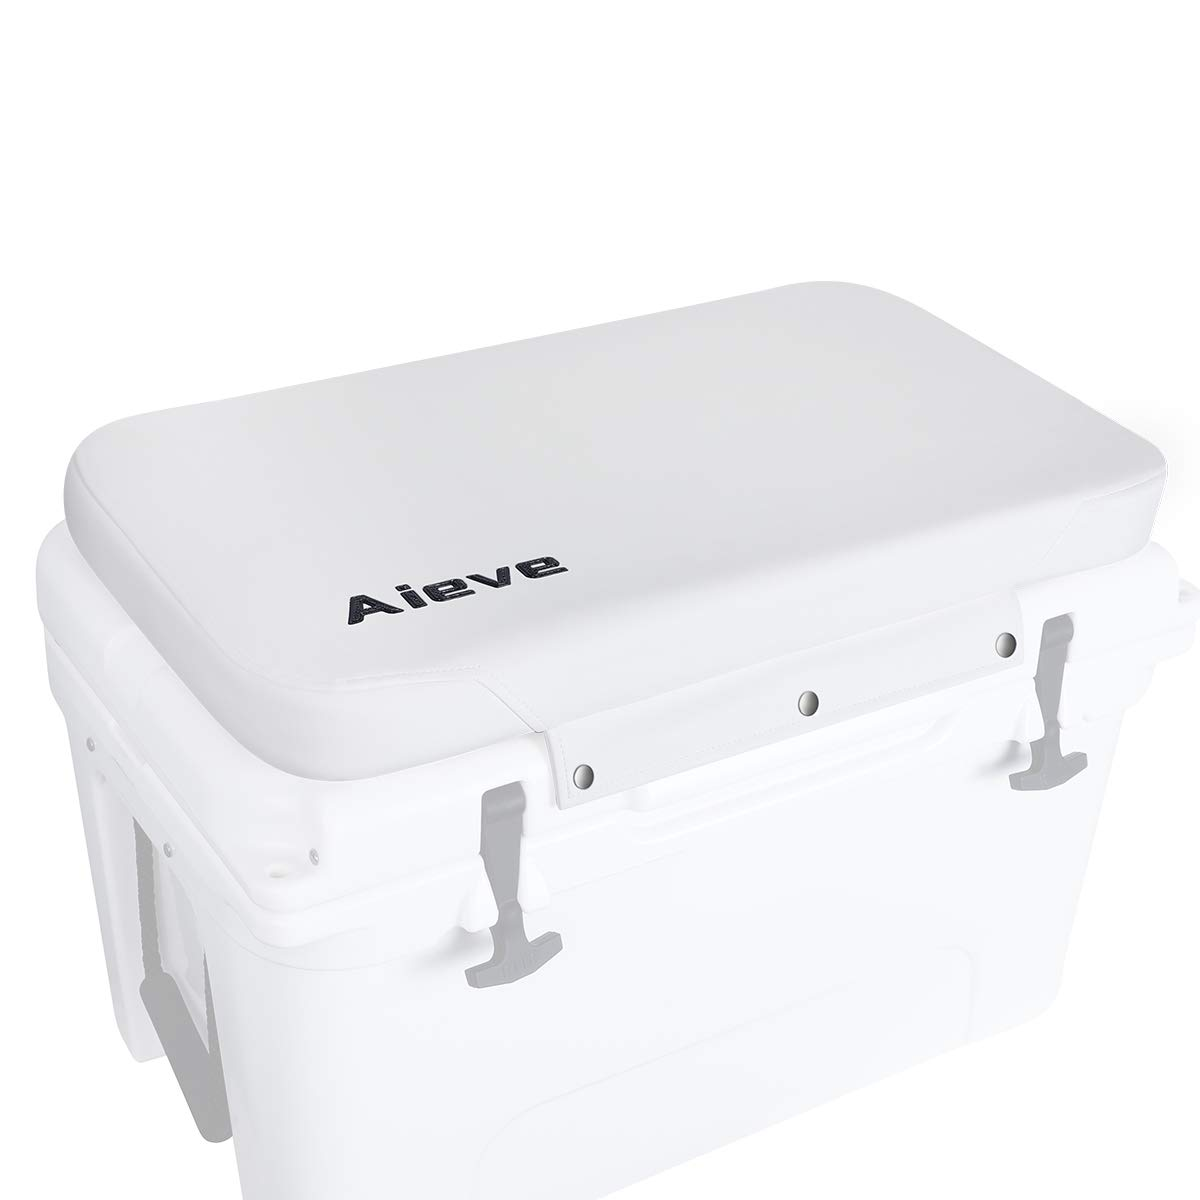 AIEVE Cooler Cushion, Cooler Seat Cushion for YETI and RTIC Tundra 45 Quart Coolers, UV Resistant and Water Resistant Cooler Accessories (White) by AIEVE